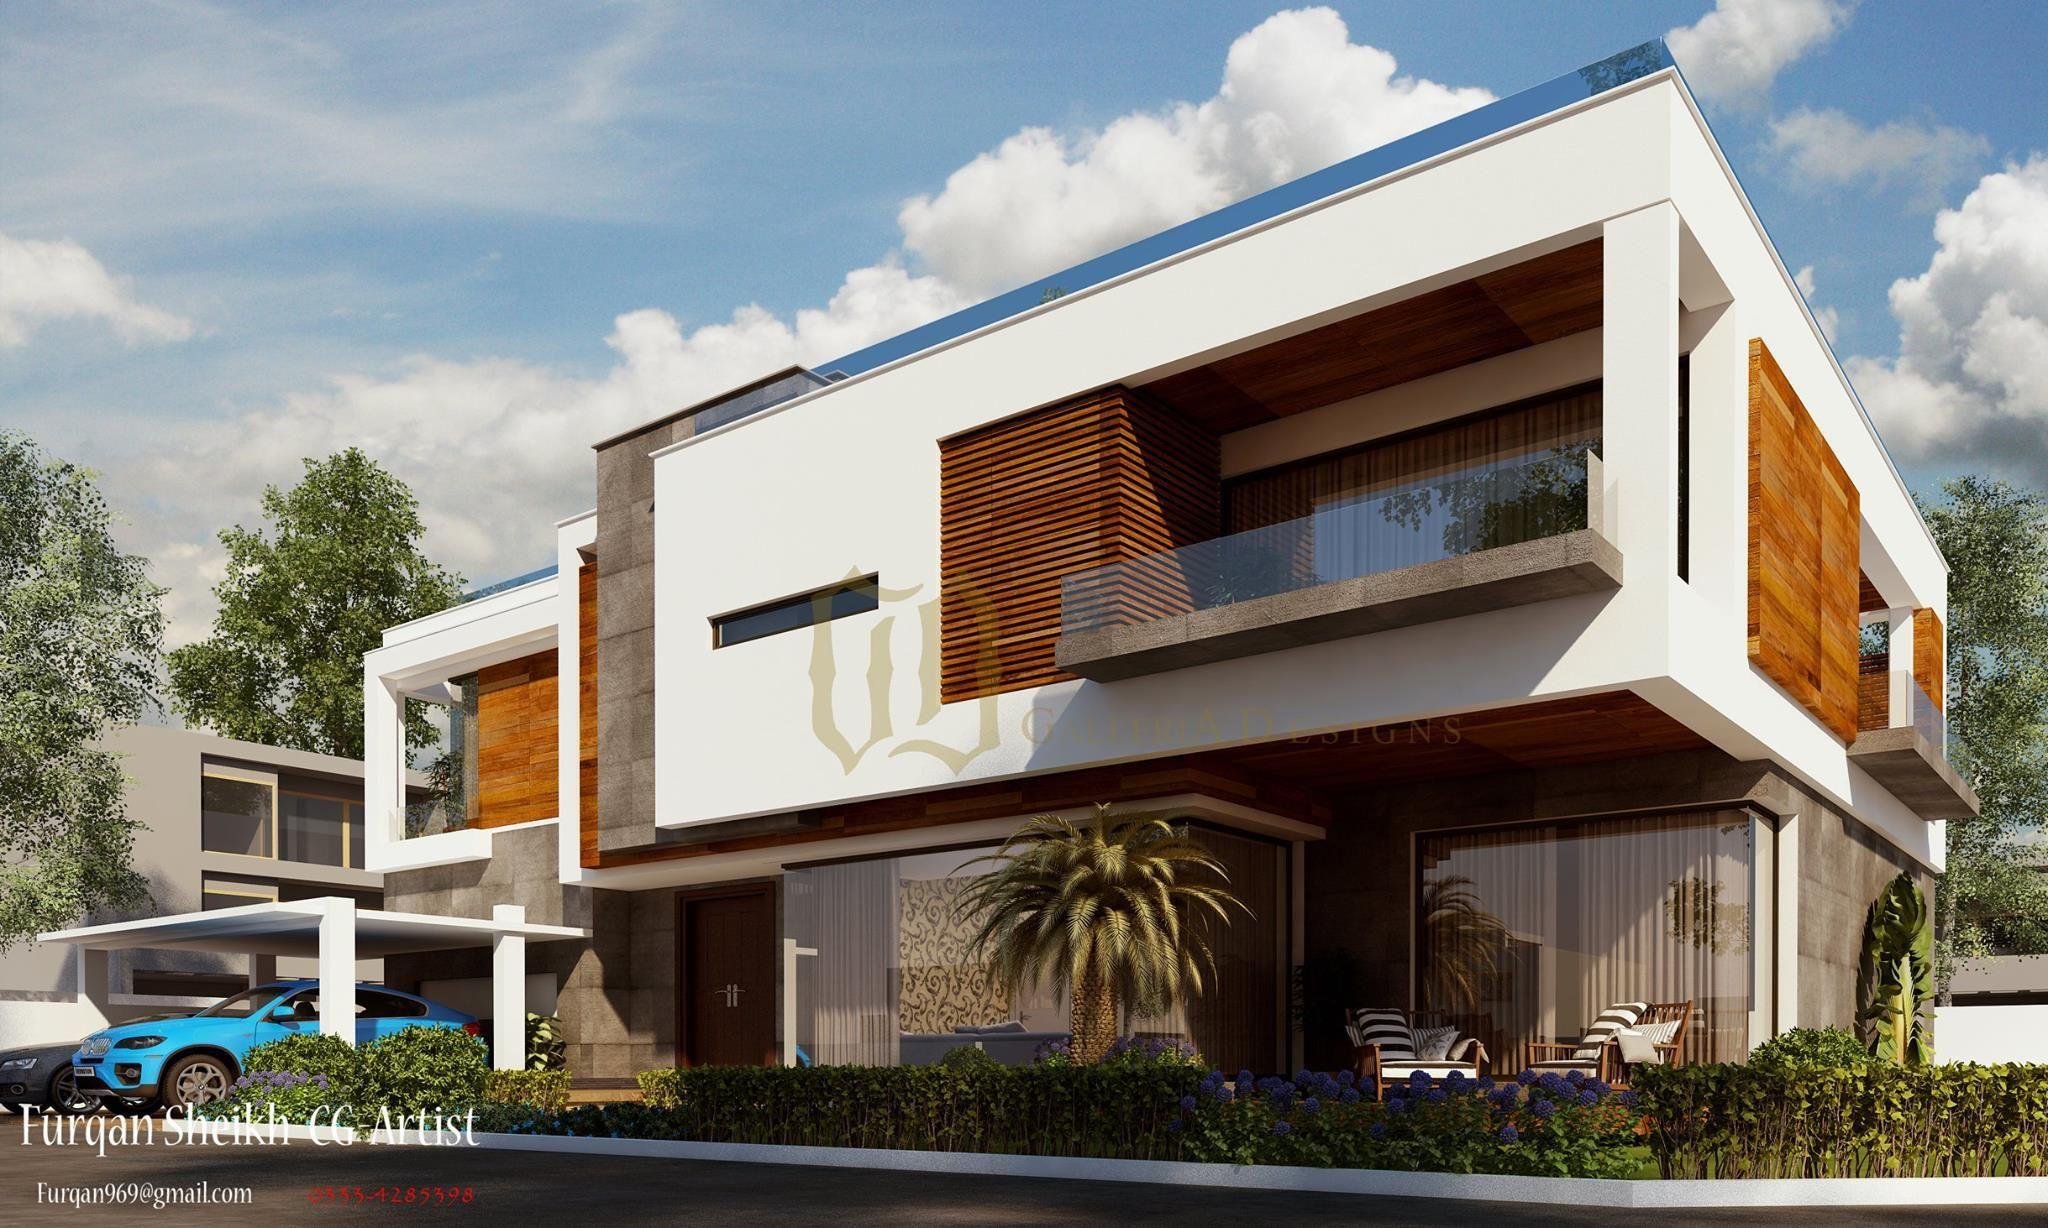 conemporary residence architecture home designs home designs pakistan galleria designs 2